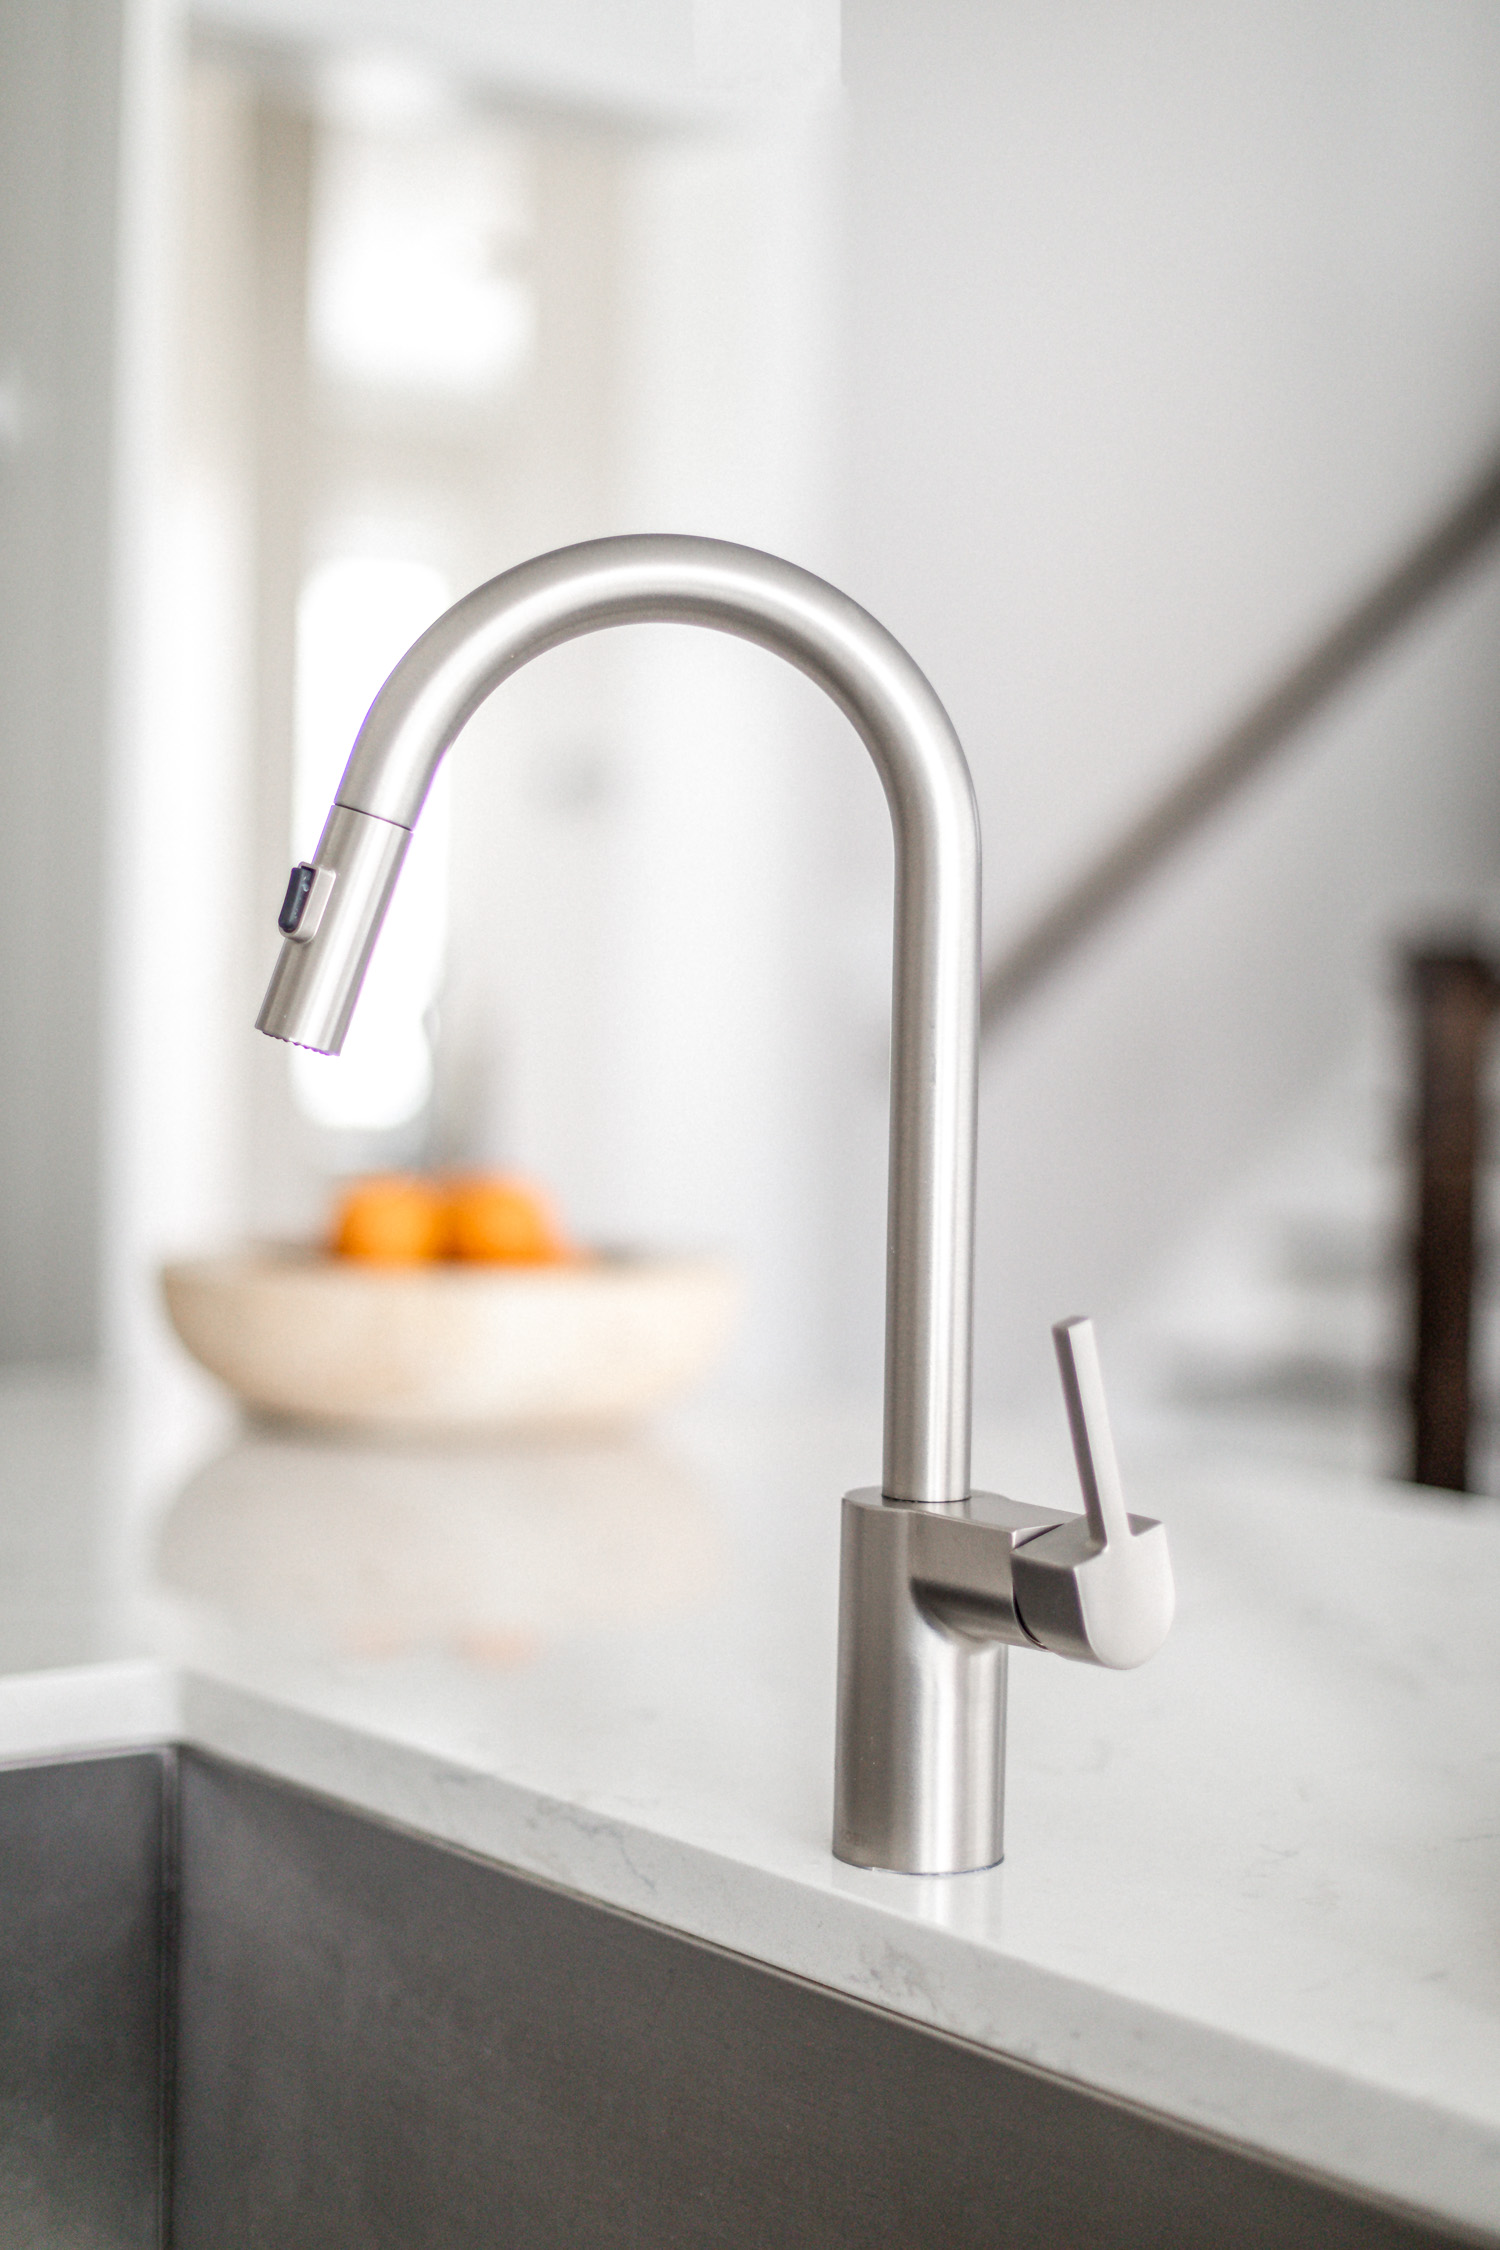 atlanta blogger monica awe-etuk reveals her white kitchen, home tour, white kitchen, how to keep a white kitchen clean, my dream kitchen, kitchen reveal, kitchen tour, white kitchen tour, faucet, moen faucet